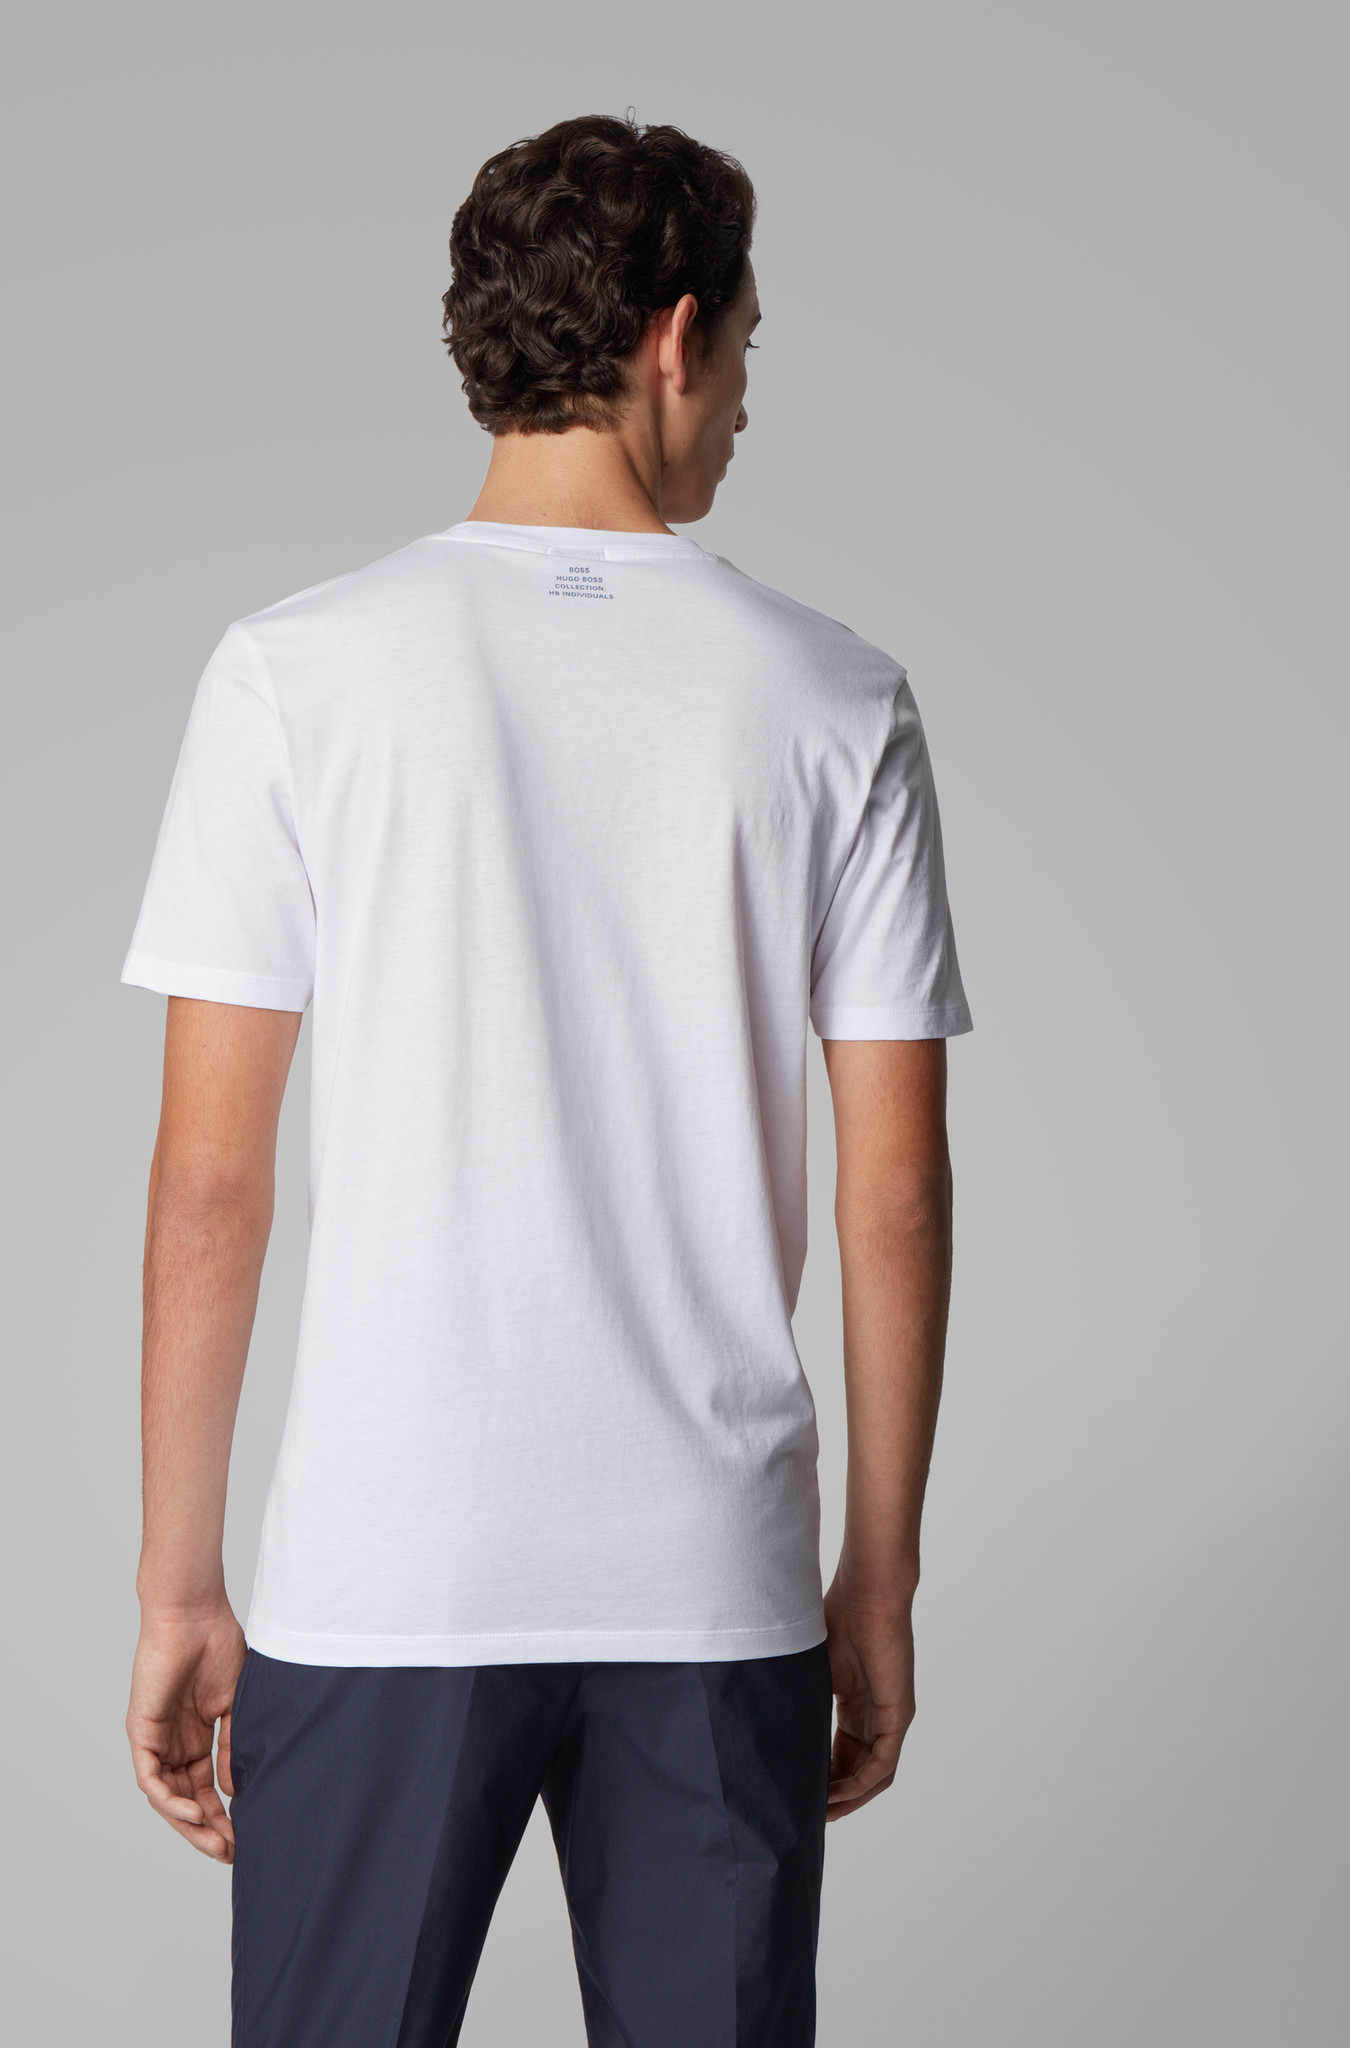 Hugo Boss T-shirt Hugo Boss 50426479-100